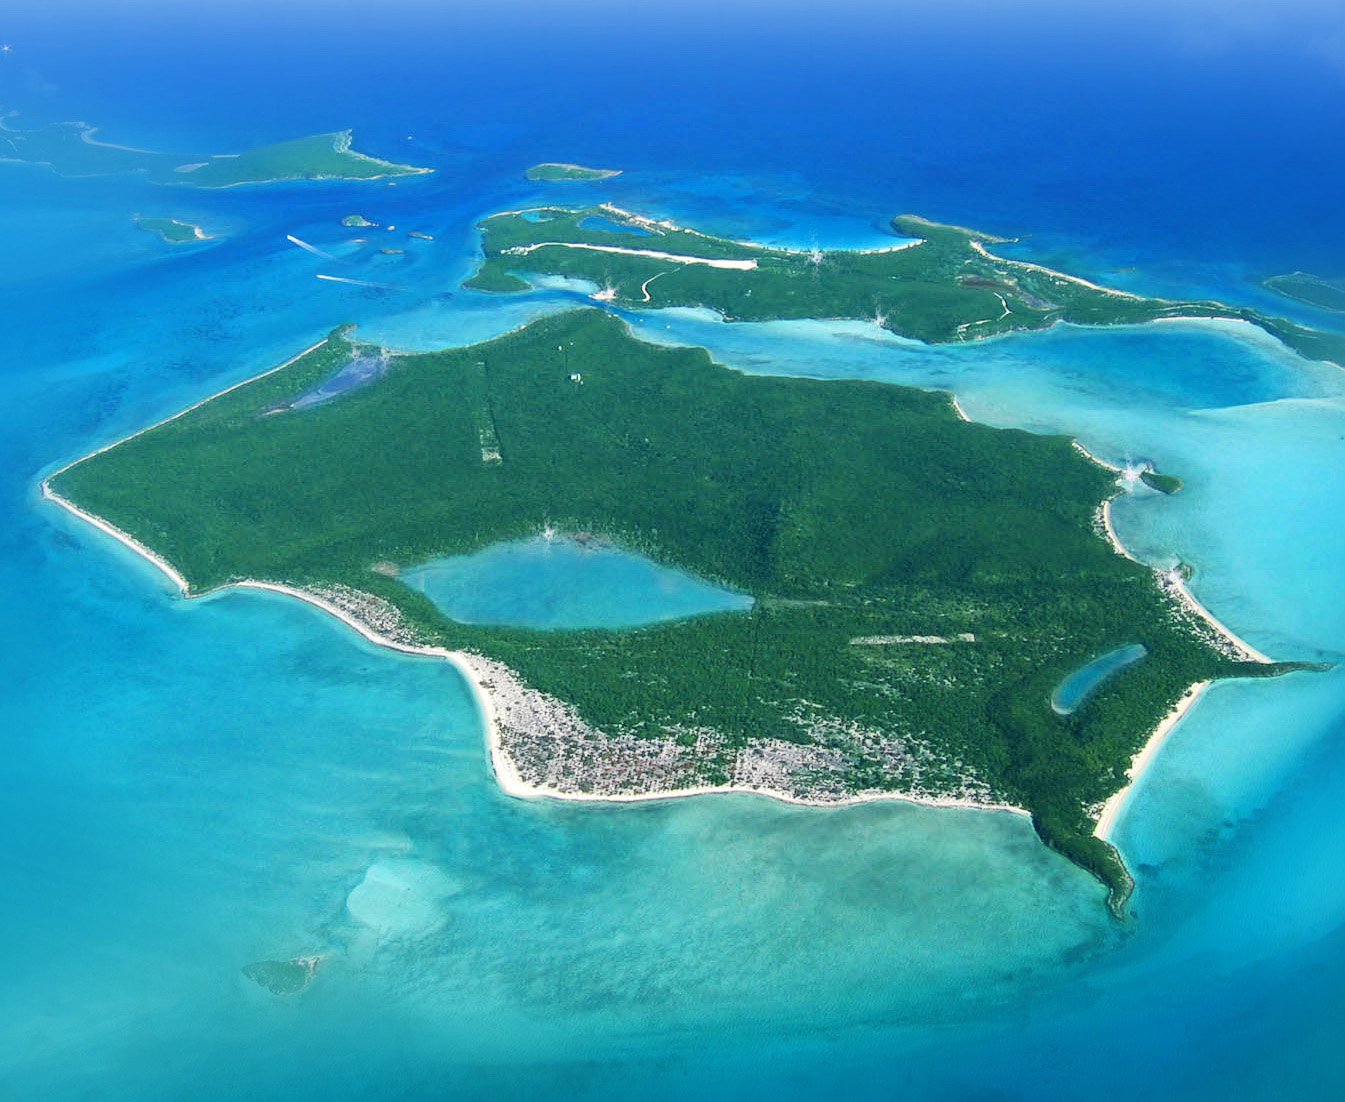 An aerial of Big Darby in the Caribbean